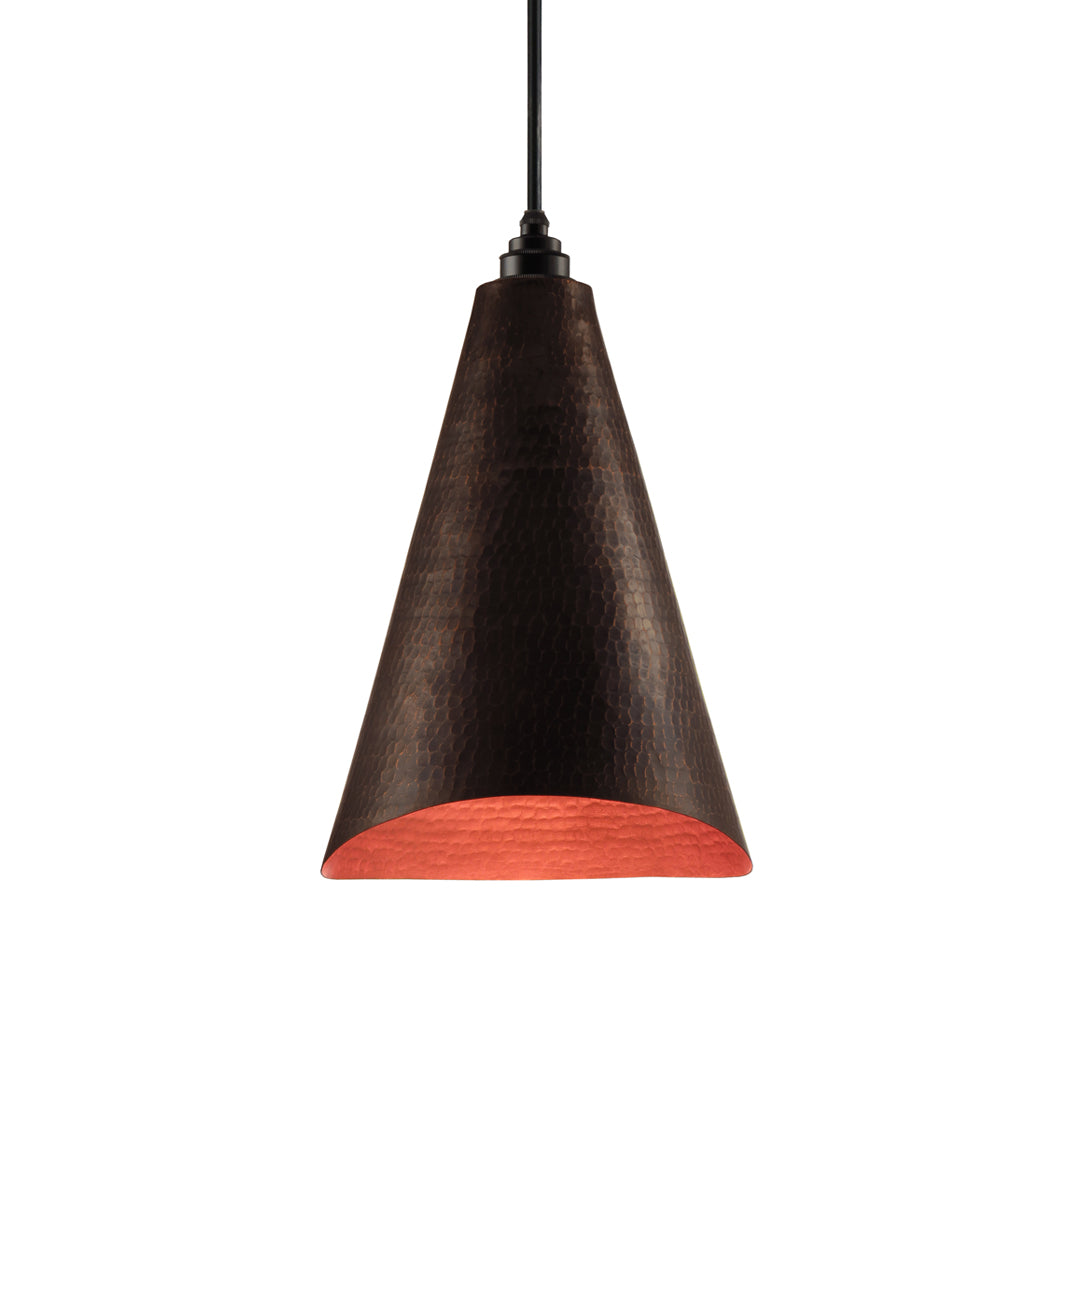 Modern hand made Cone shaped copper pendant lamp in a warm brown copper patina